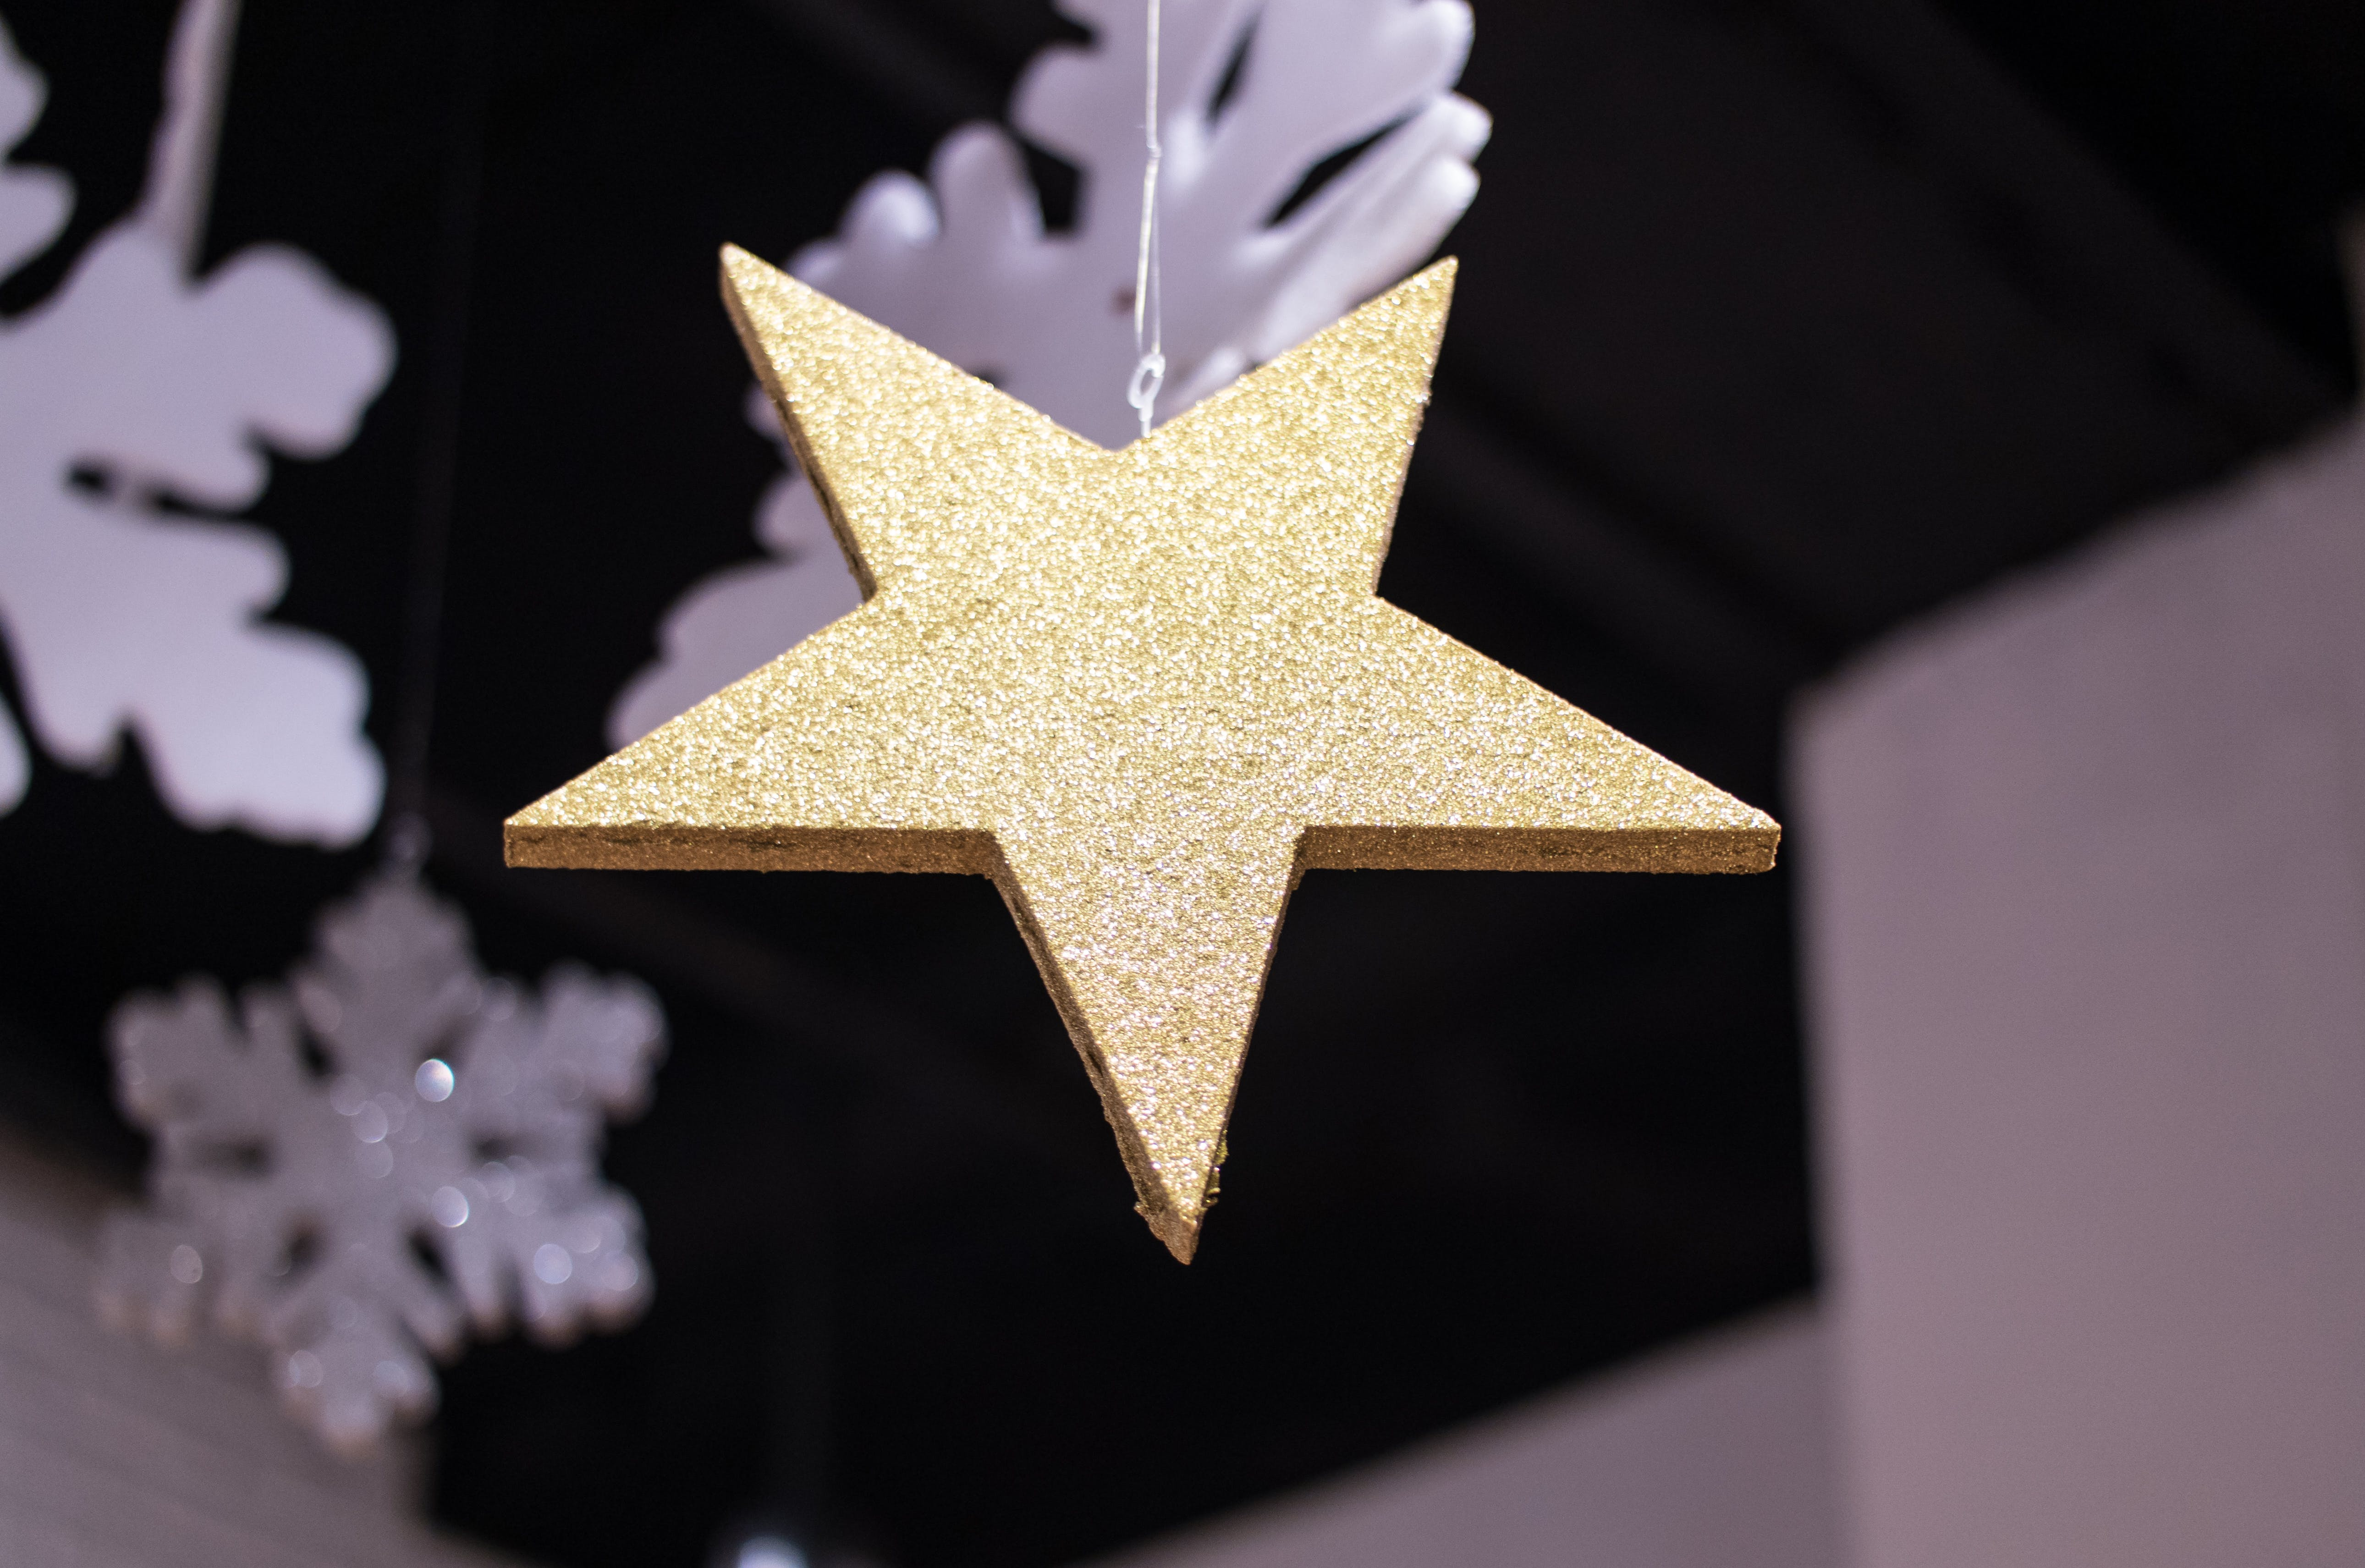 Close-up Photography of Star Covered with Glitters